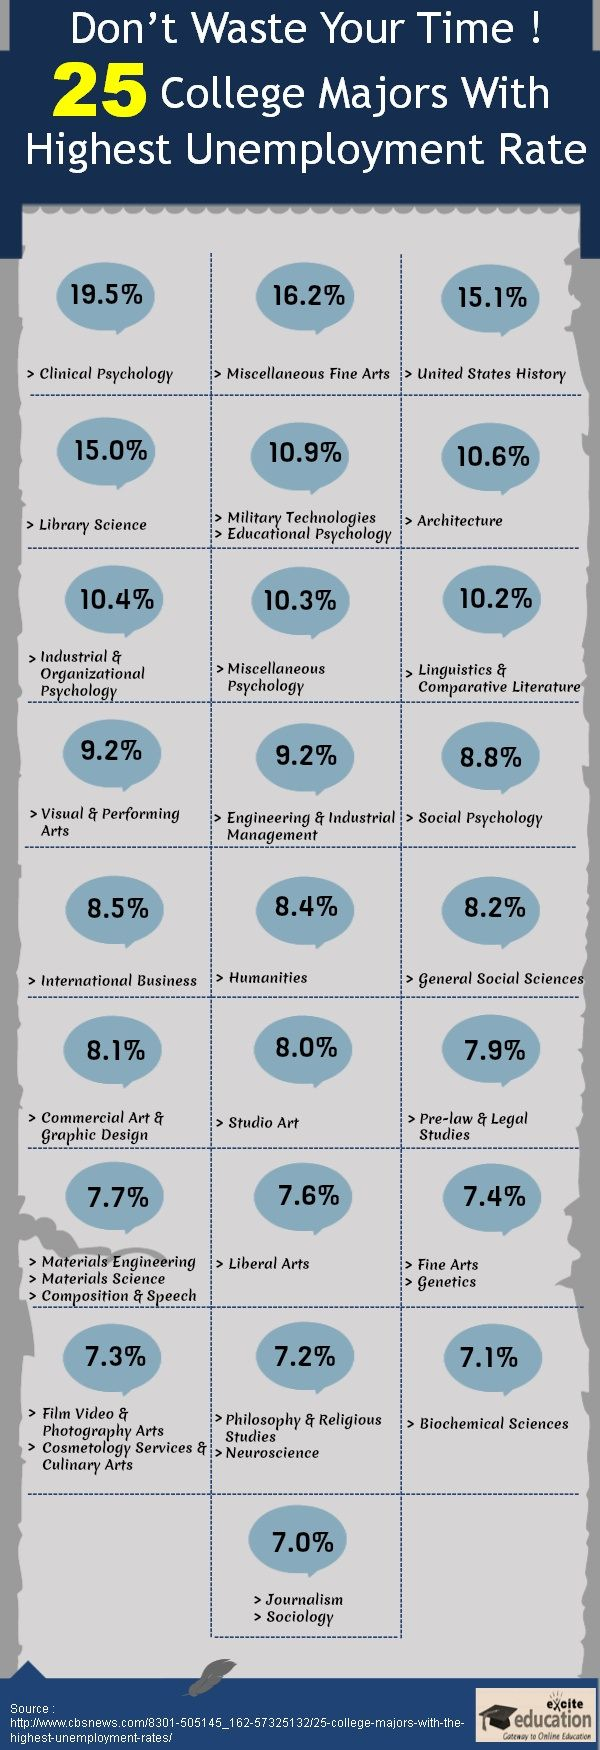 Sociology top paid college majors